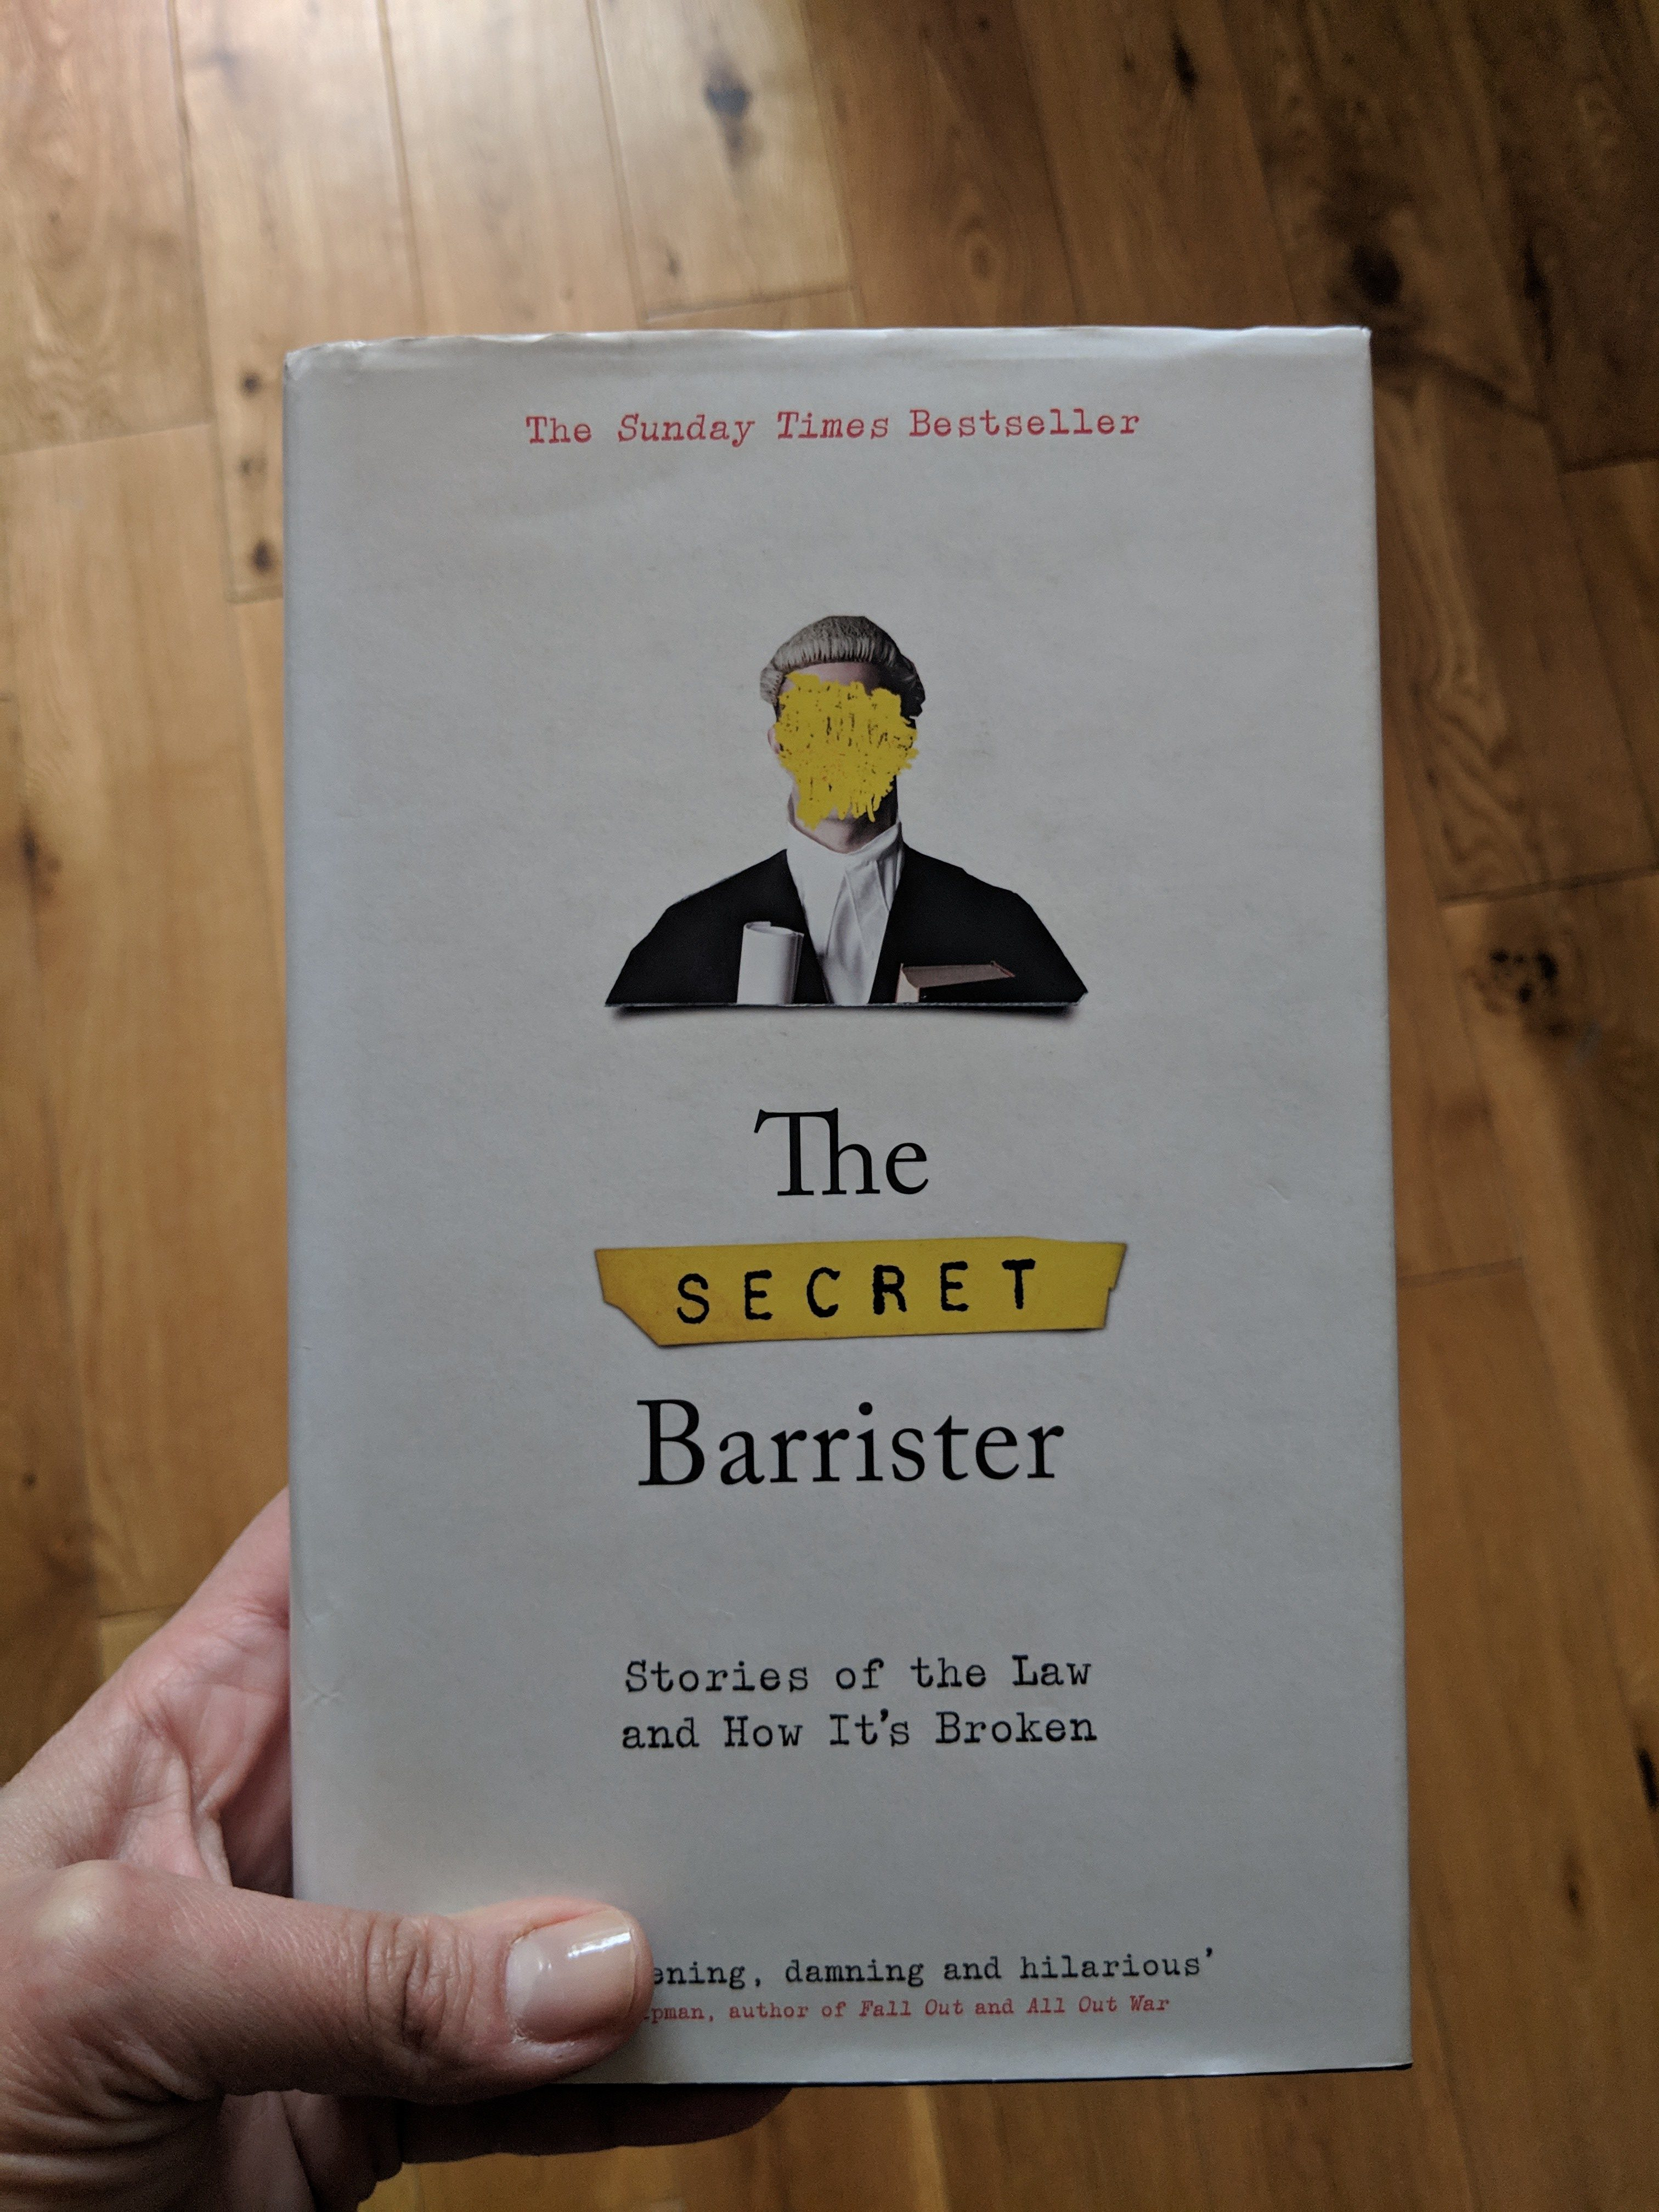 The Secret Barrister: Stories of the Law and How It's